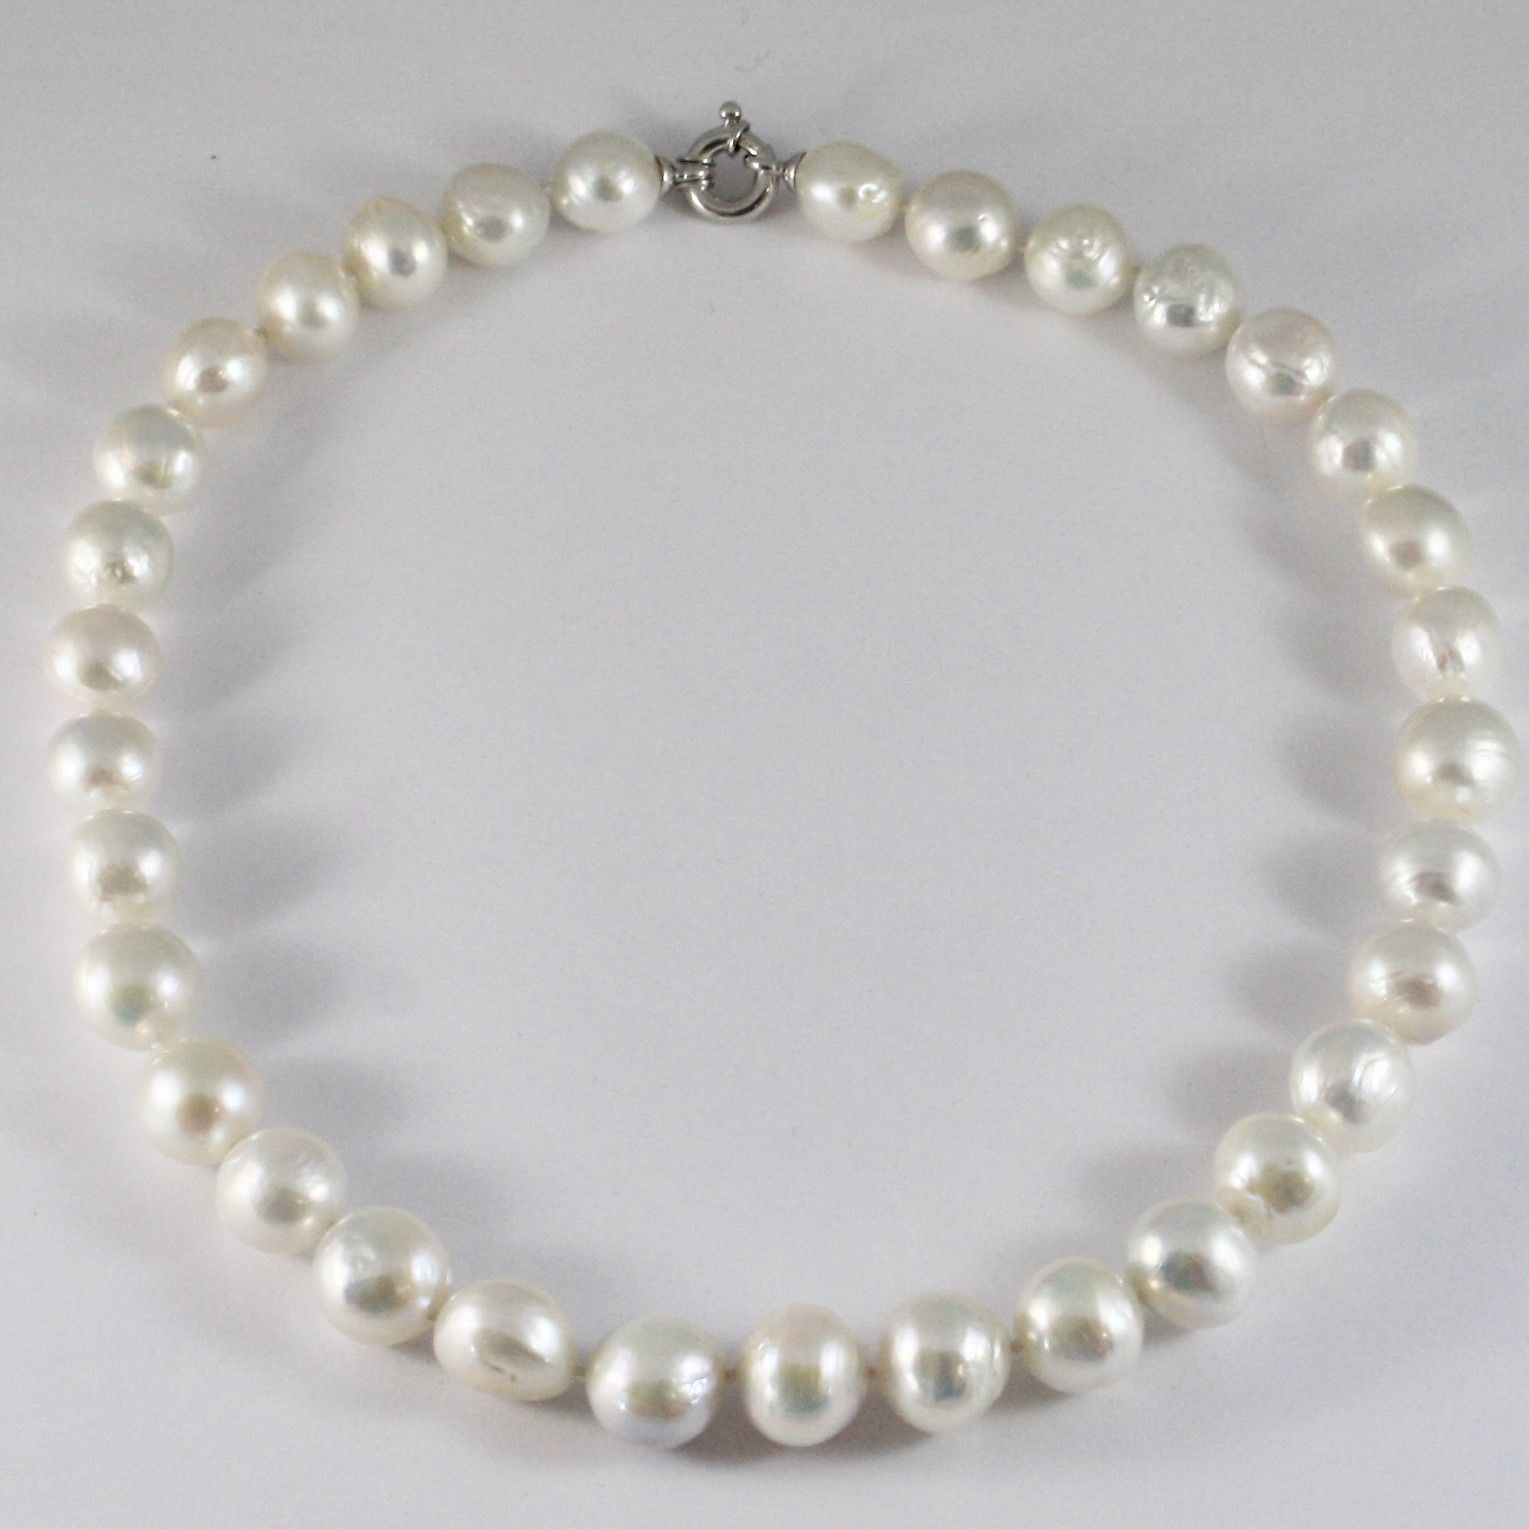 NECKLACE STRING OF PEARLS BAROQUE STYLE 11 13 MM WITH CLOSURE WHITE GOLD 18K